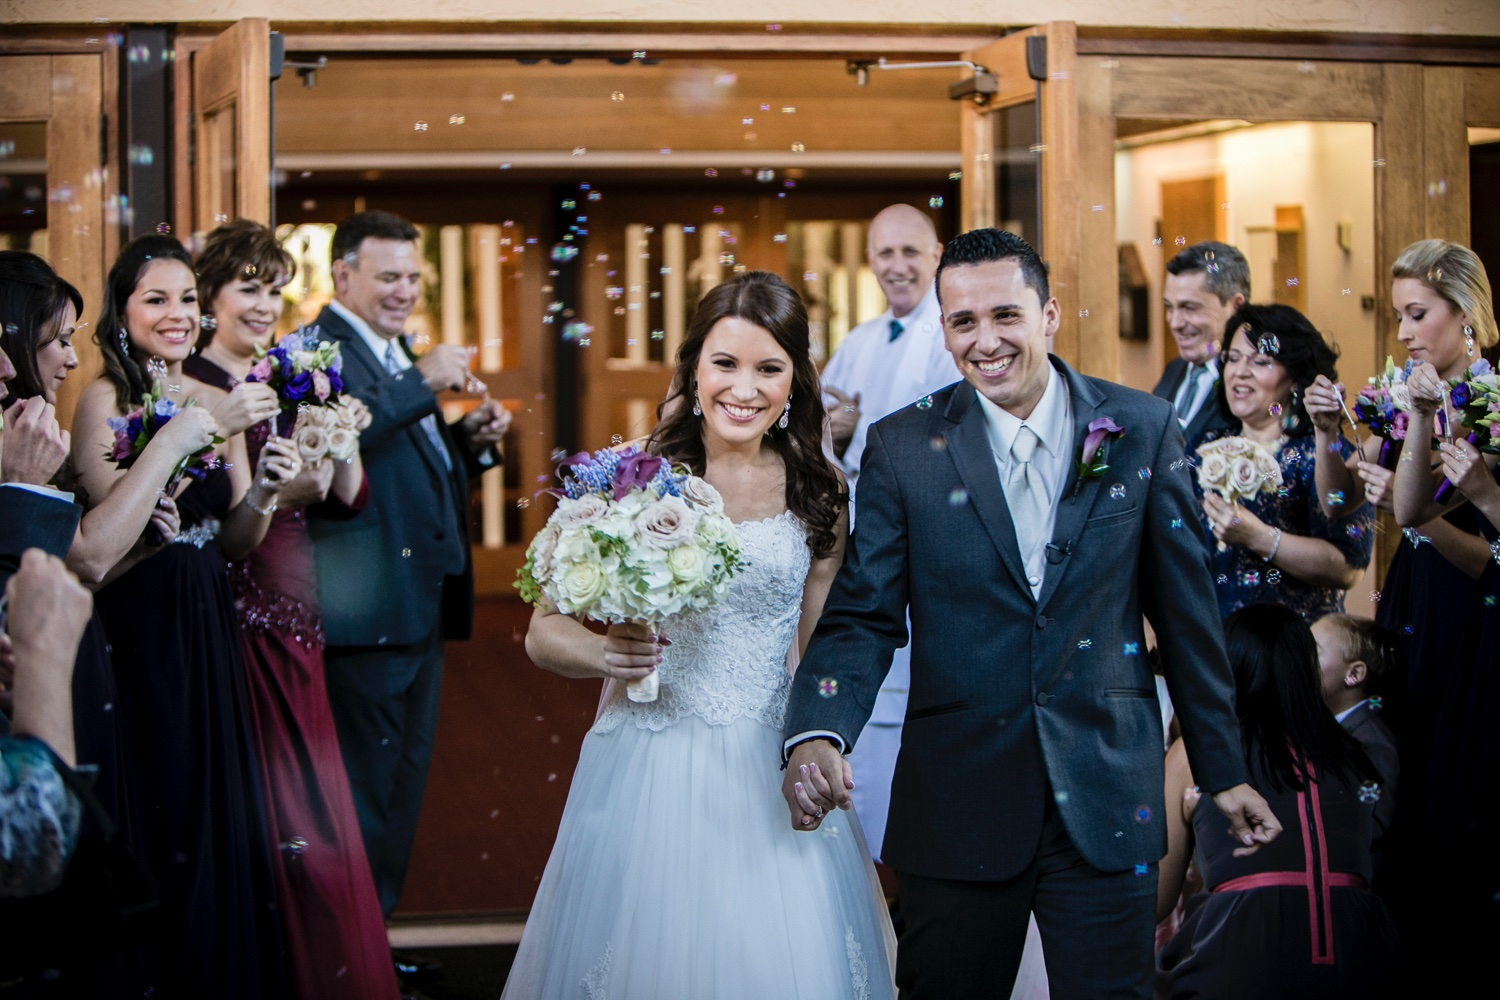 023-2014-2015_top30_by_orlando_wedding_photographer_brianadamsphoto.com.jpg